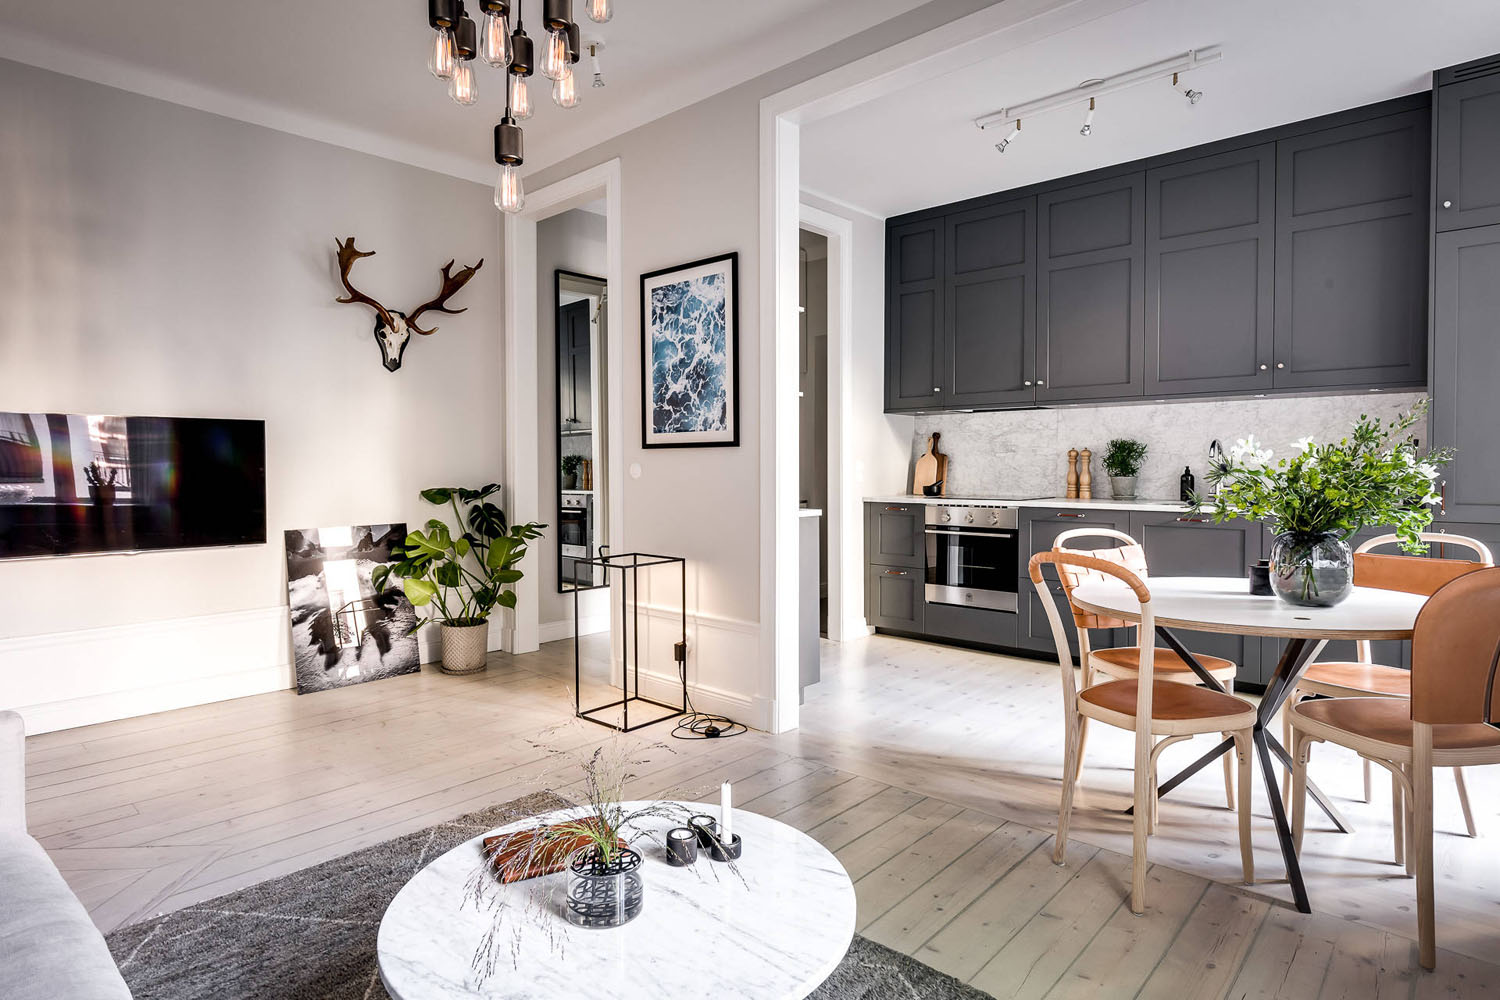 Fullsize Of Small One Bedroom Apartment Ideas